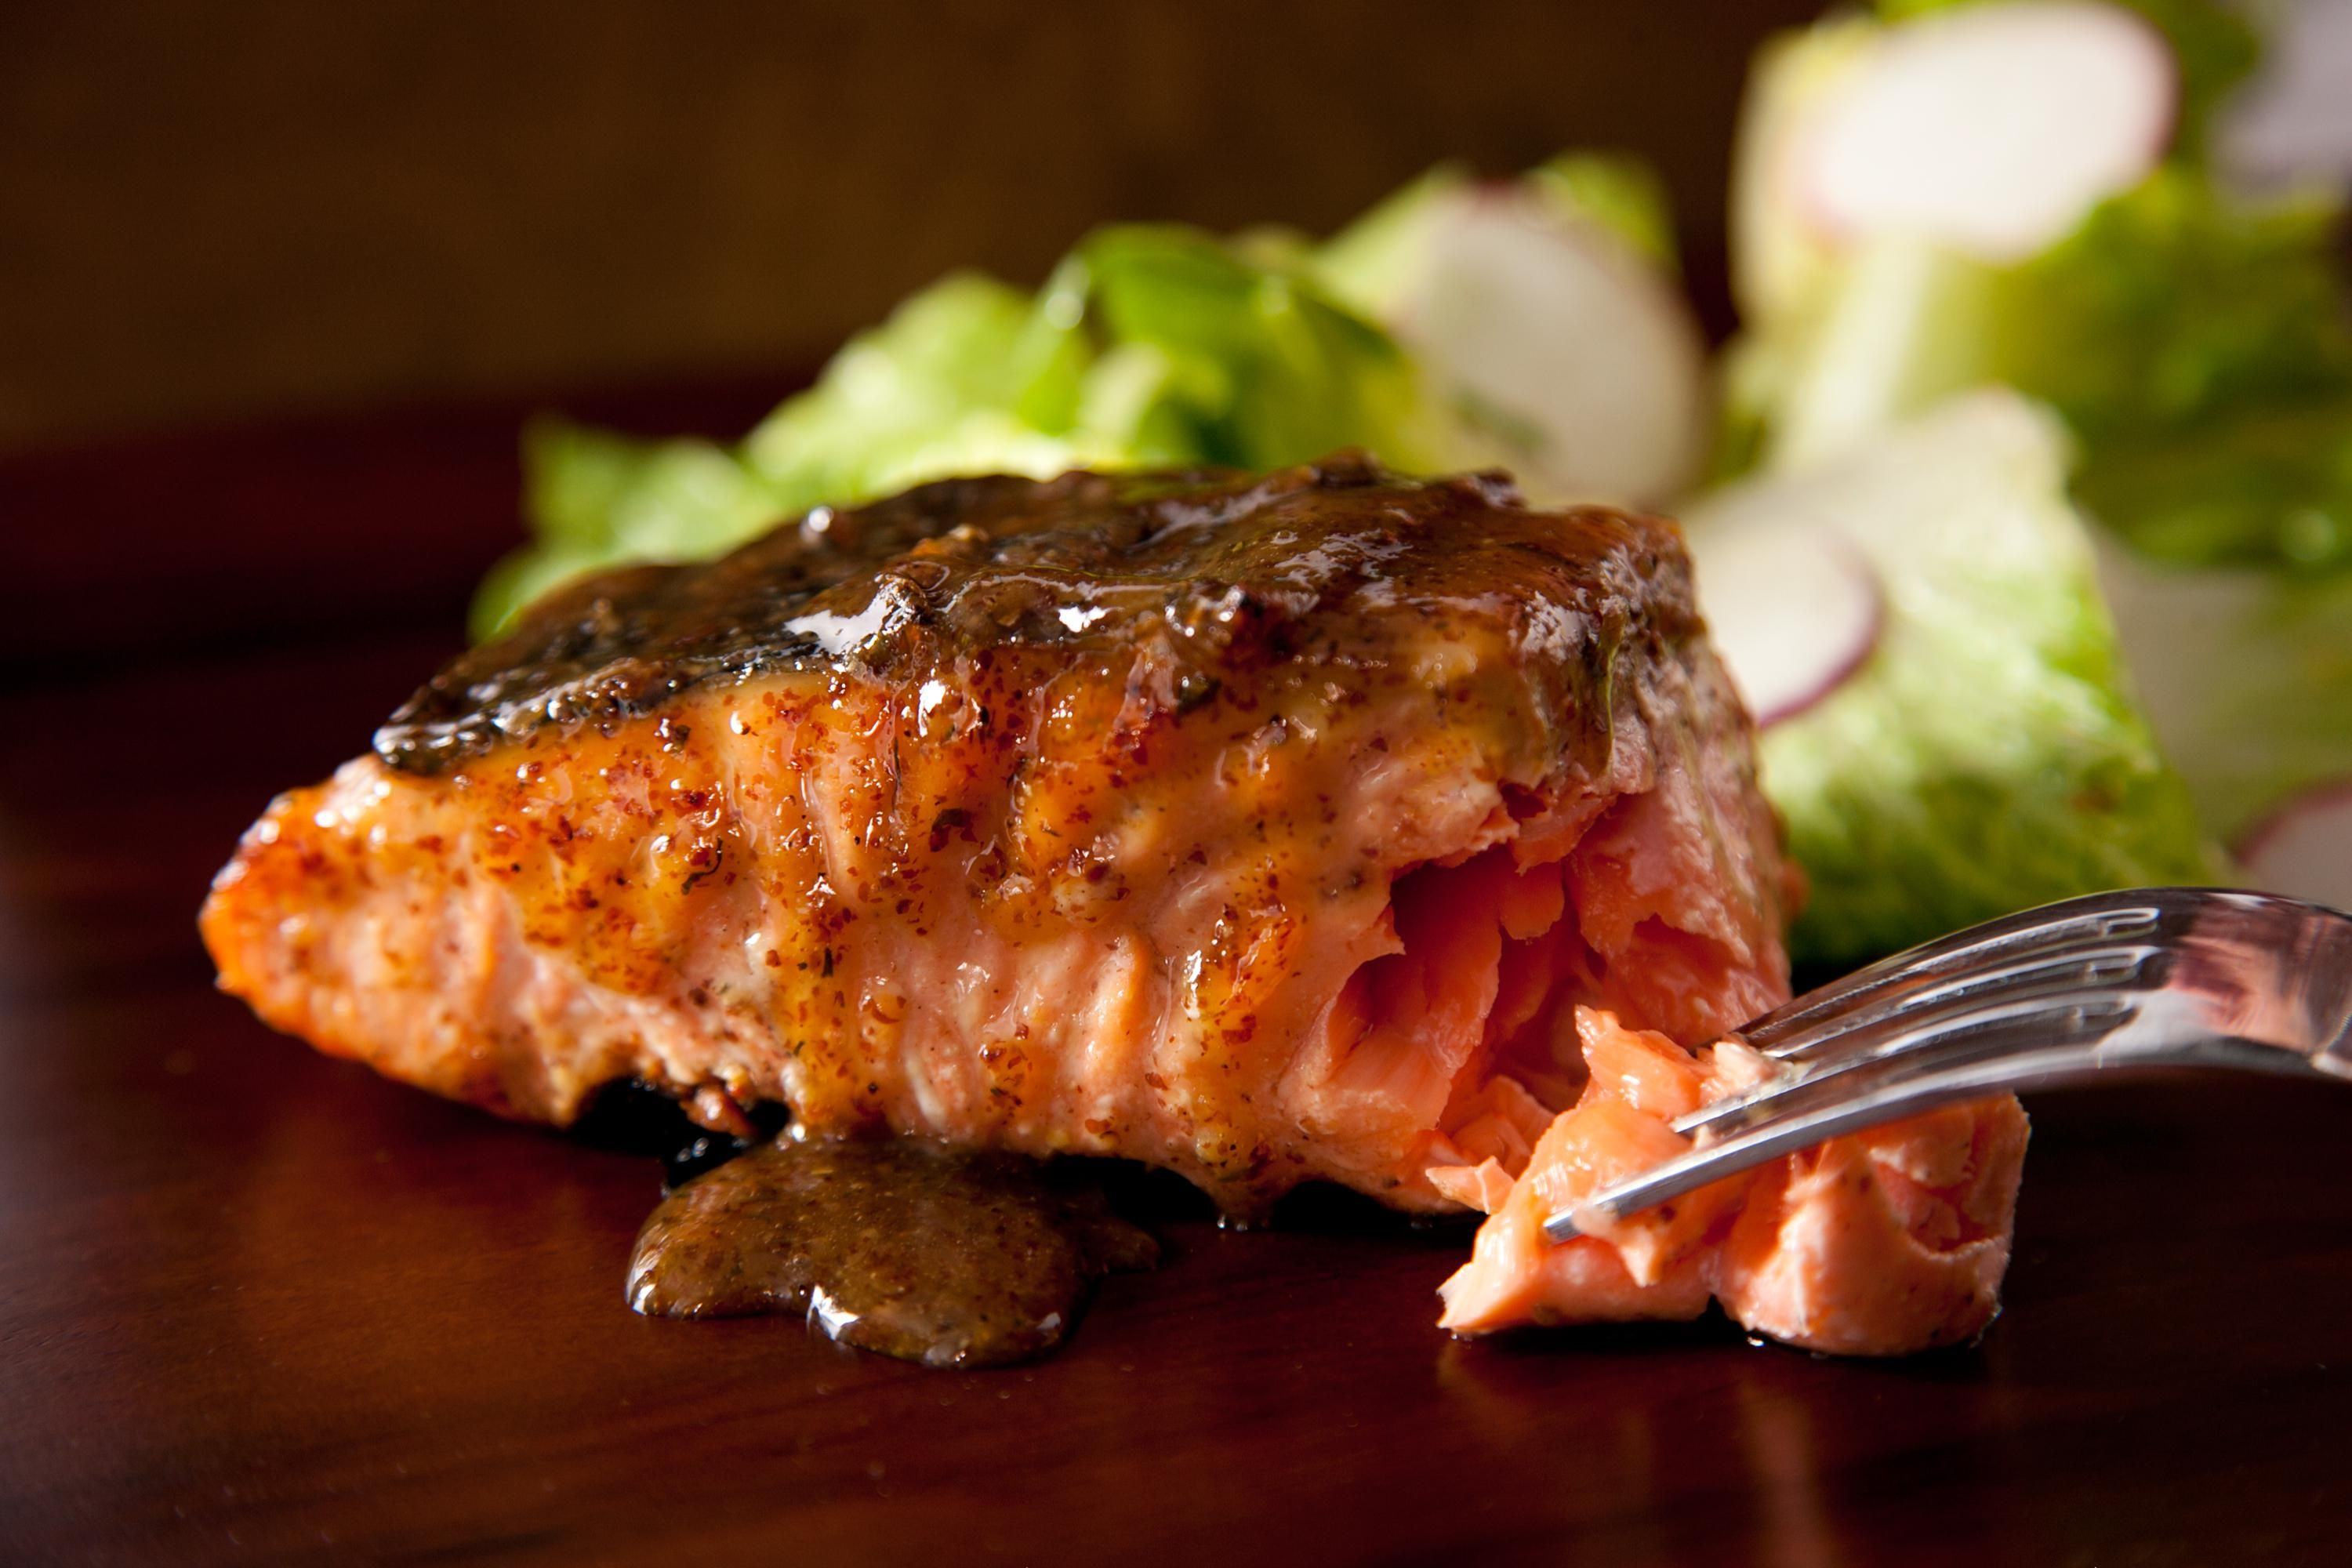 This grilled salmon recipe is a quick and easy way to cook salmon on the grill. Grilling is not only an easy way to cook salmon, it's also the healthiest.